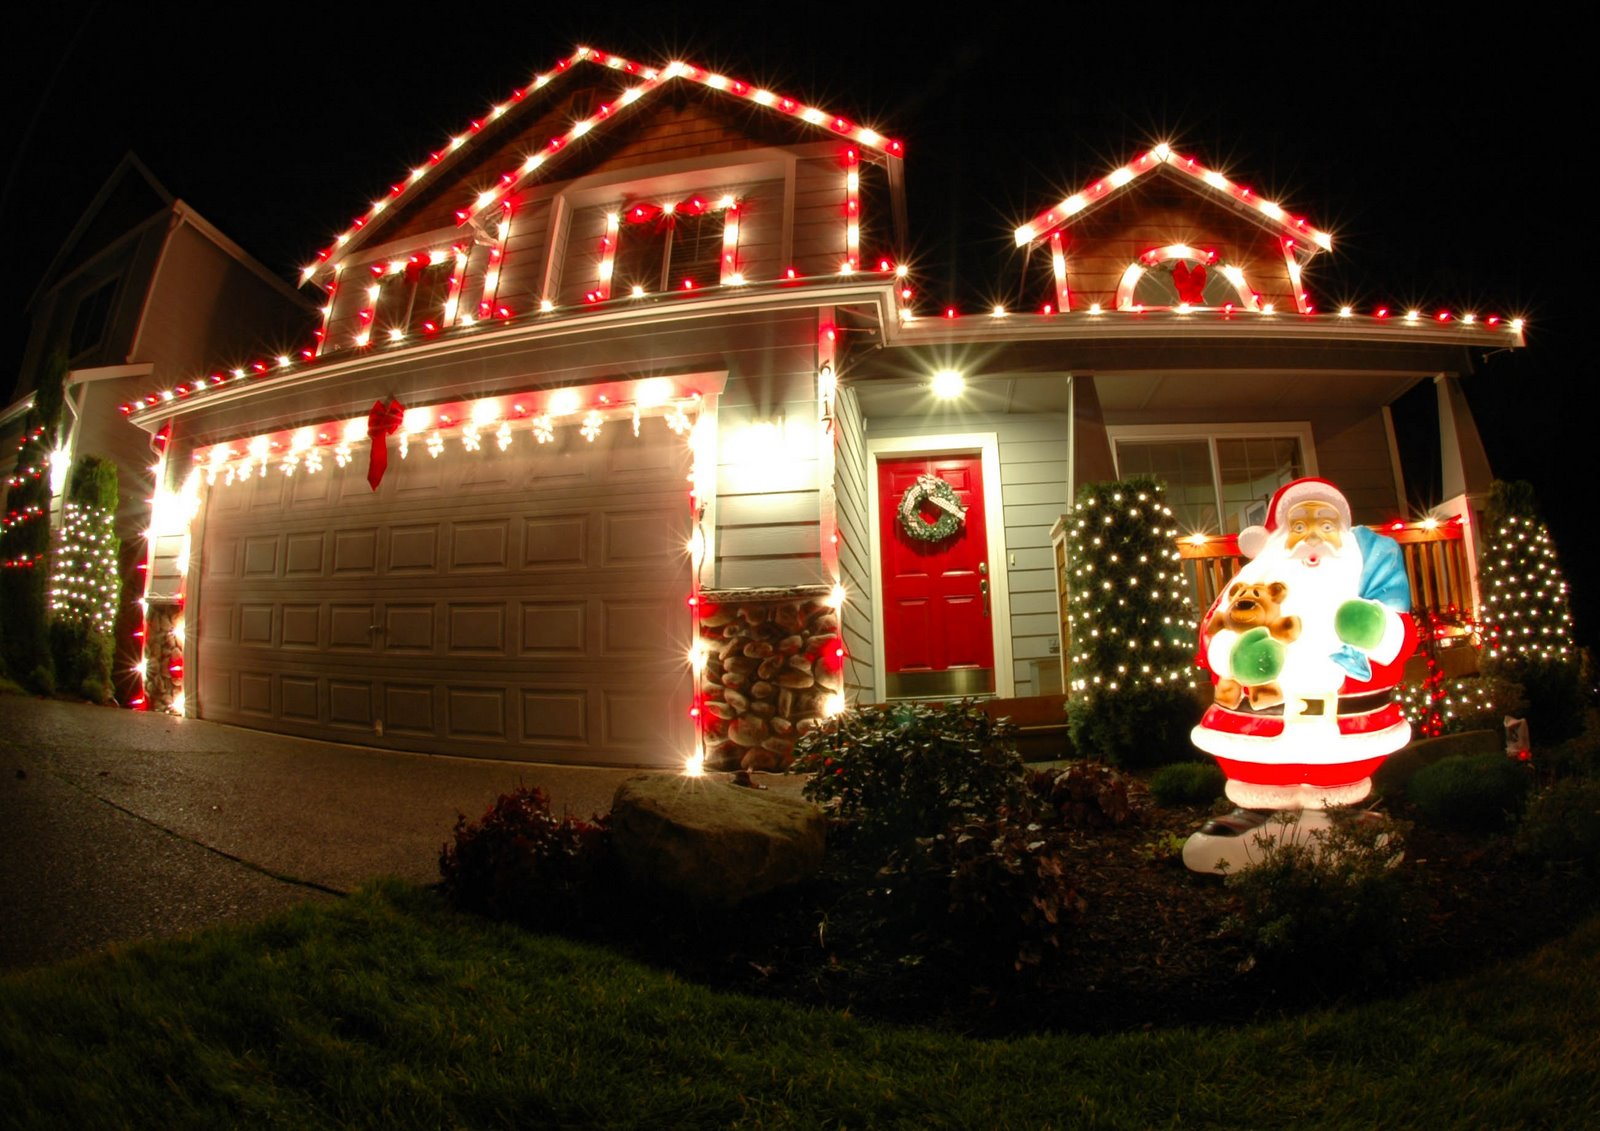 High Definition Photo And Wallpapers Christmas Lights House Wallpapers Christmas Lights House